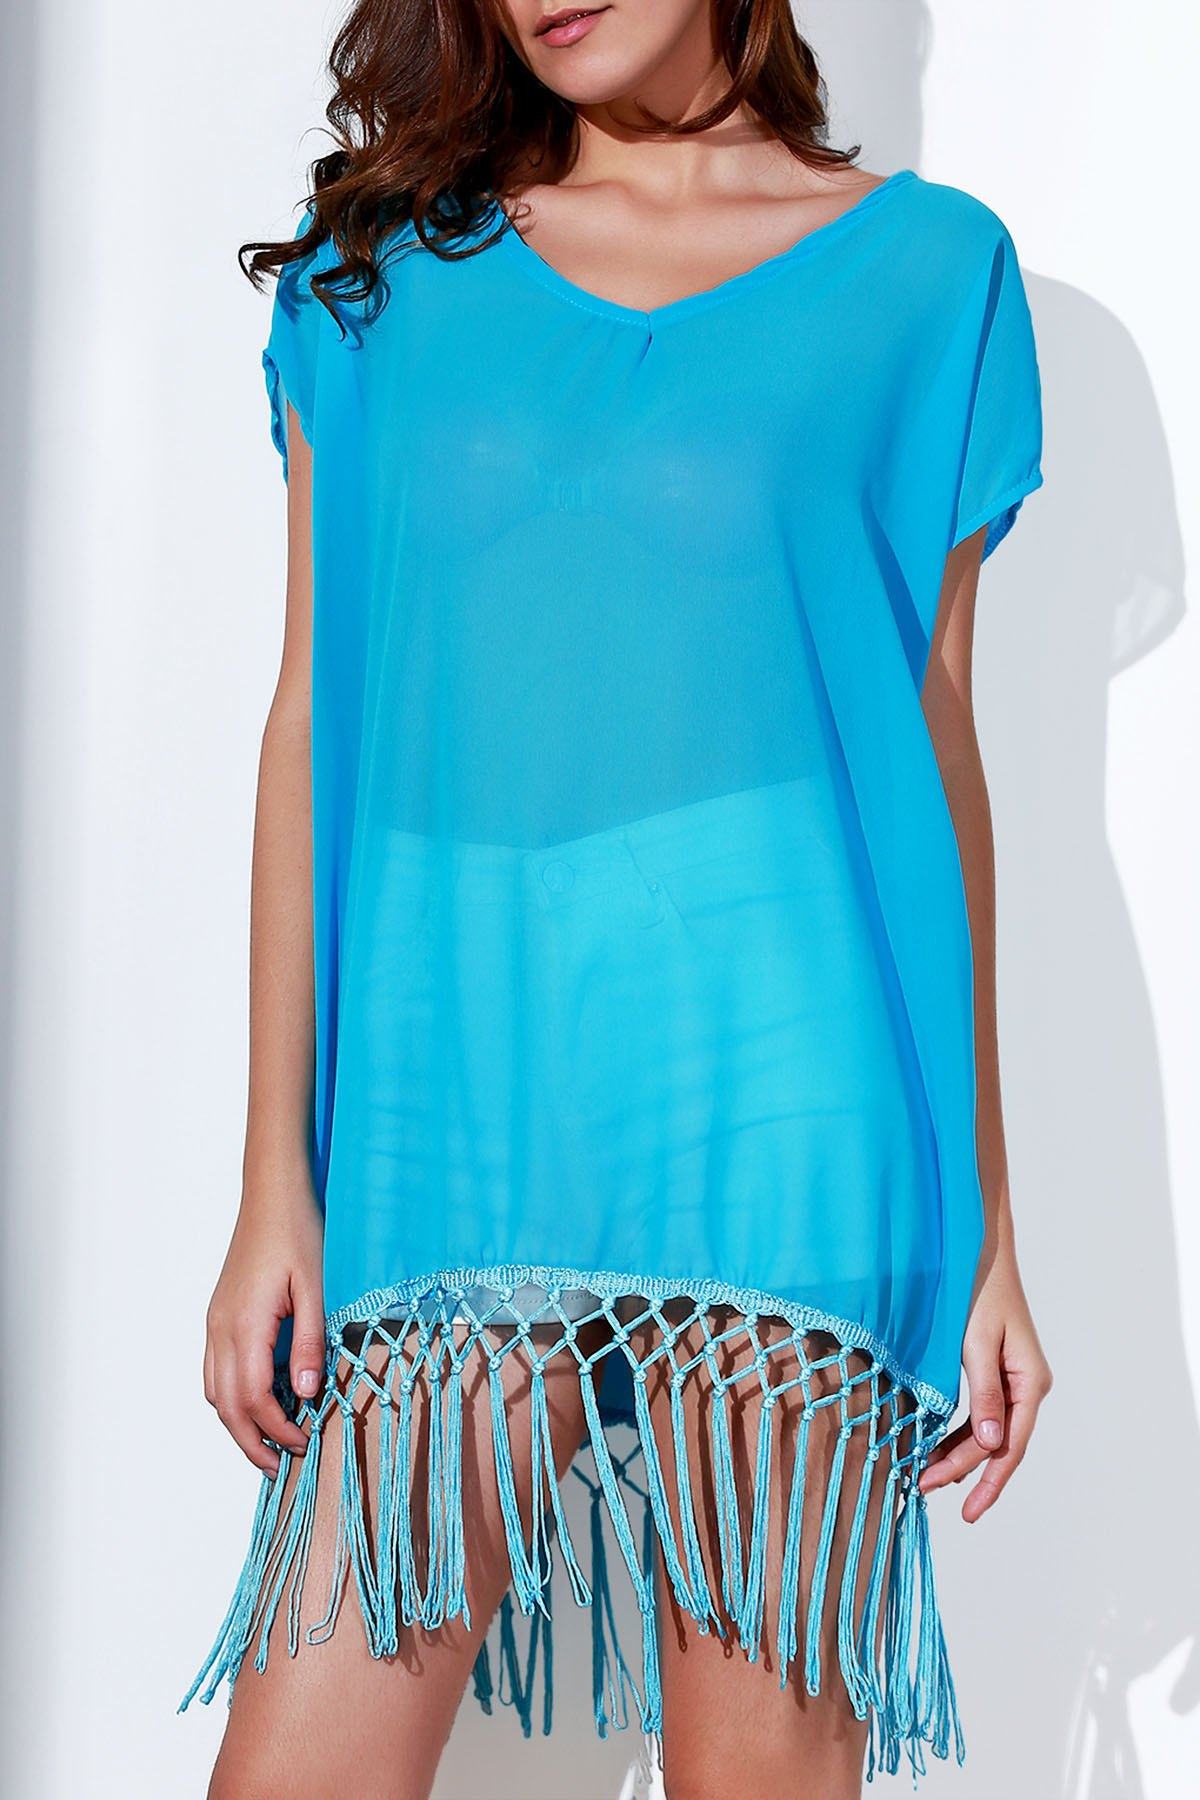 Round Collar Short Sleeve Tassels Spliced Cover Up